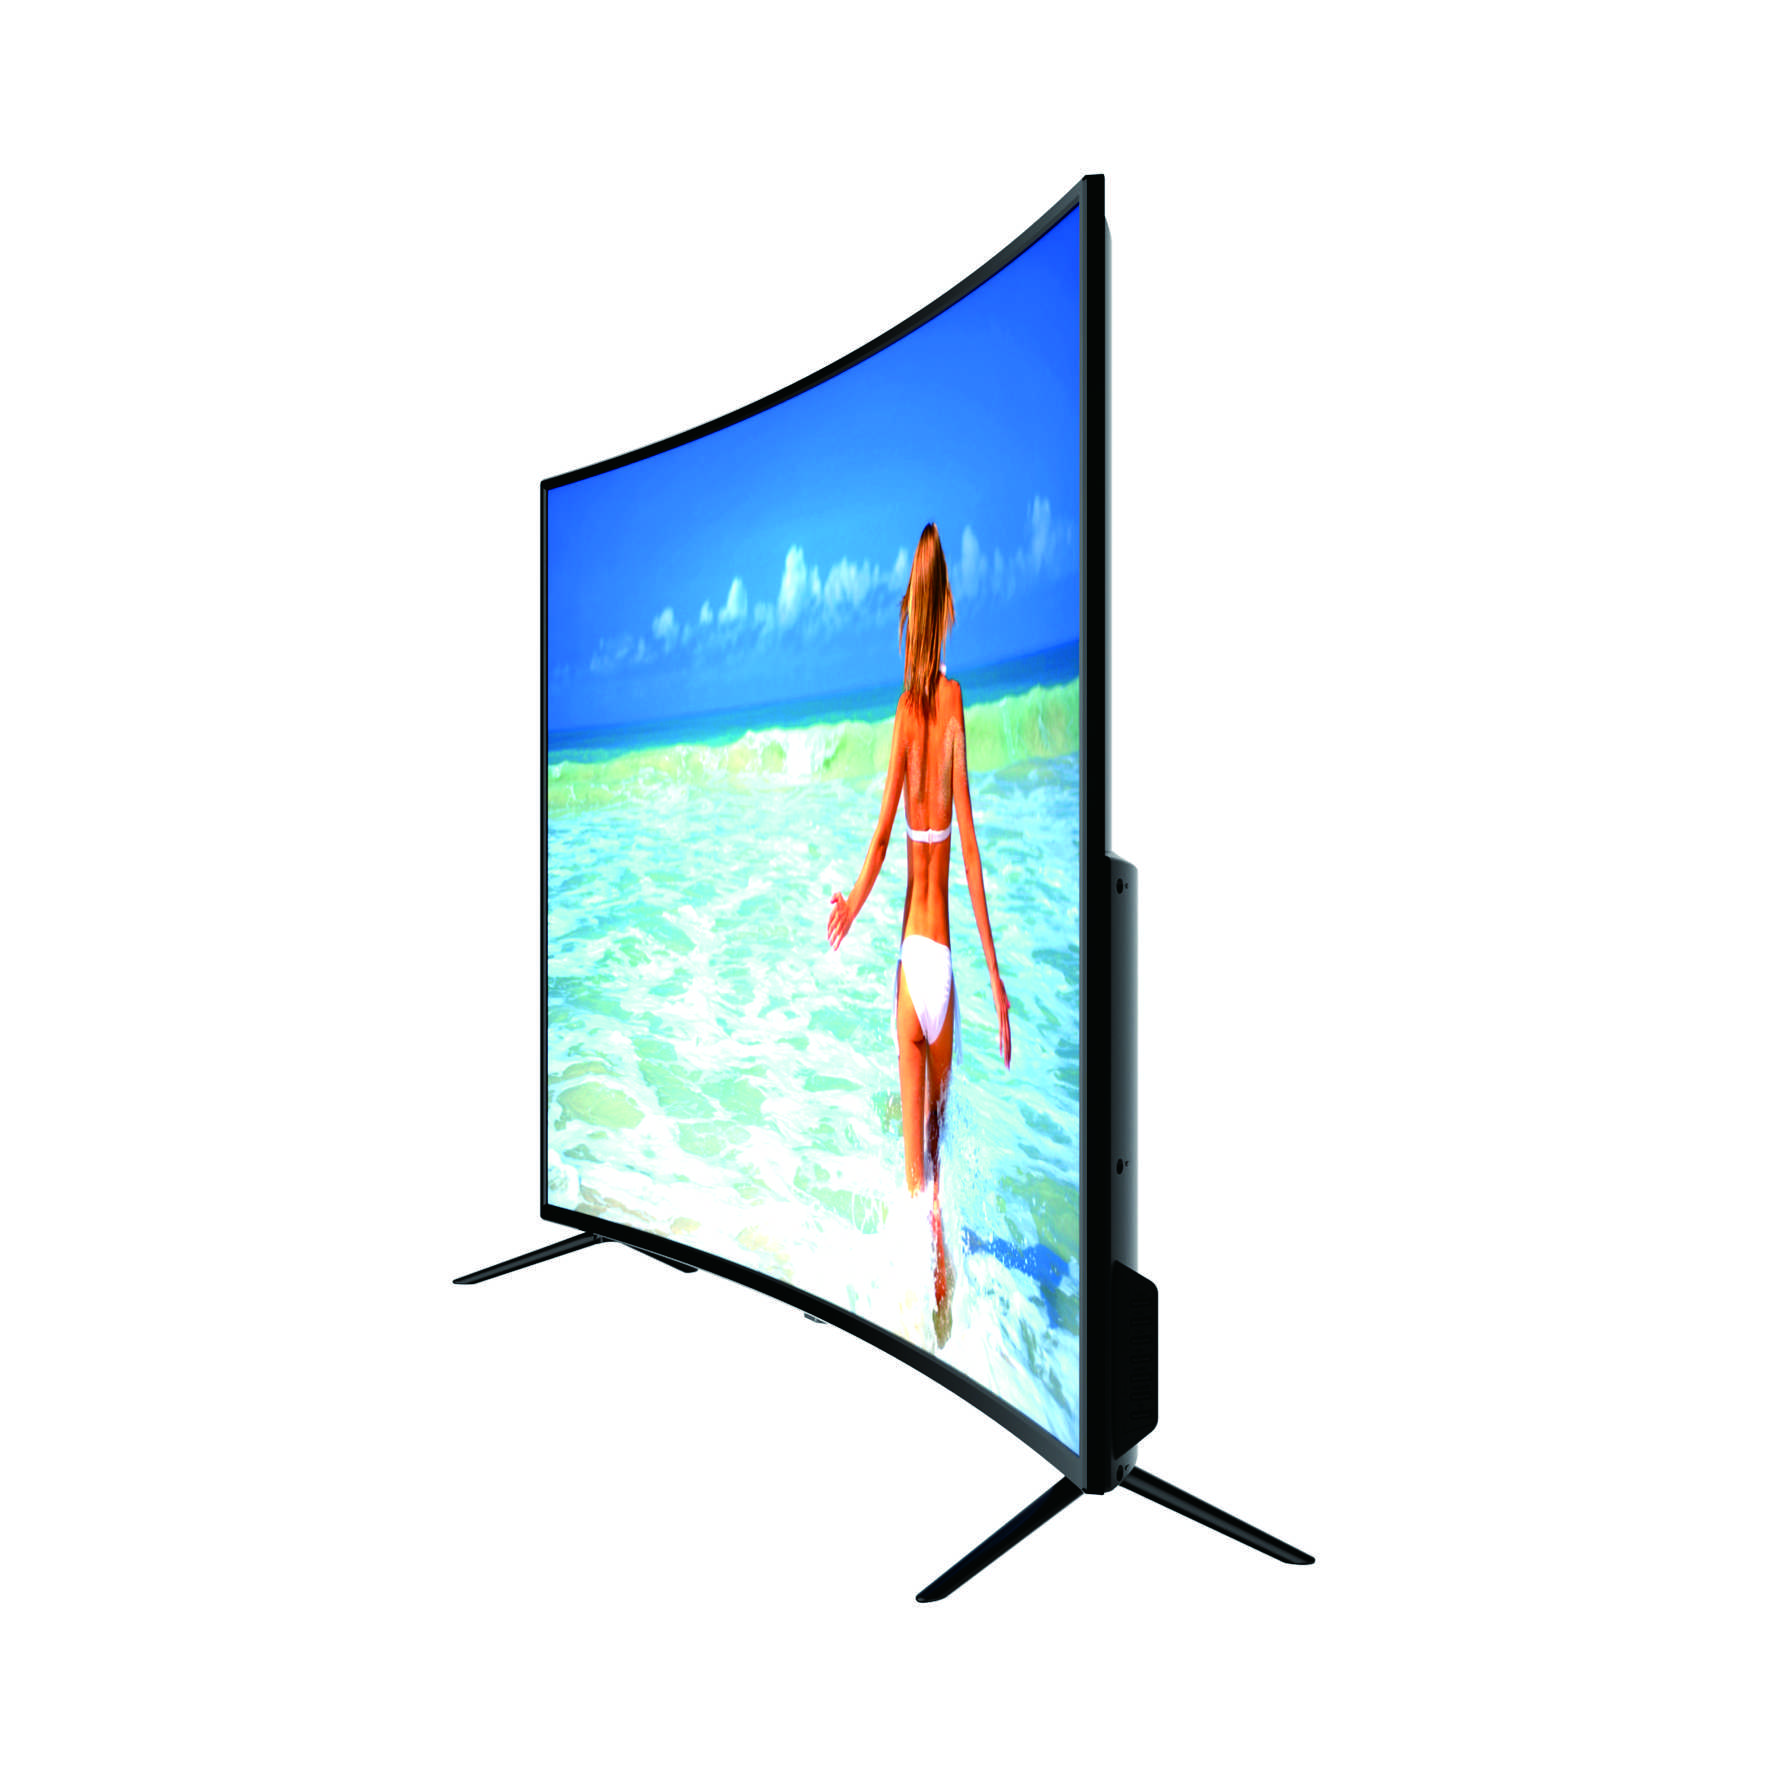 MOQ 2 Pieces Curved 55inch 4k smart <strong>TV</strong>